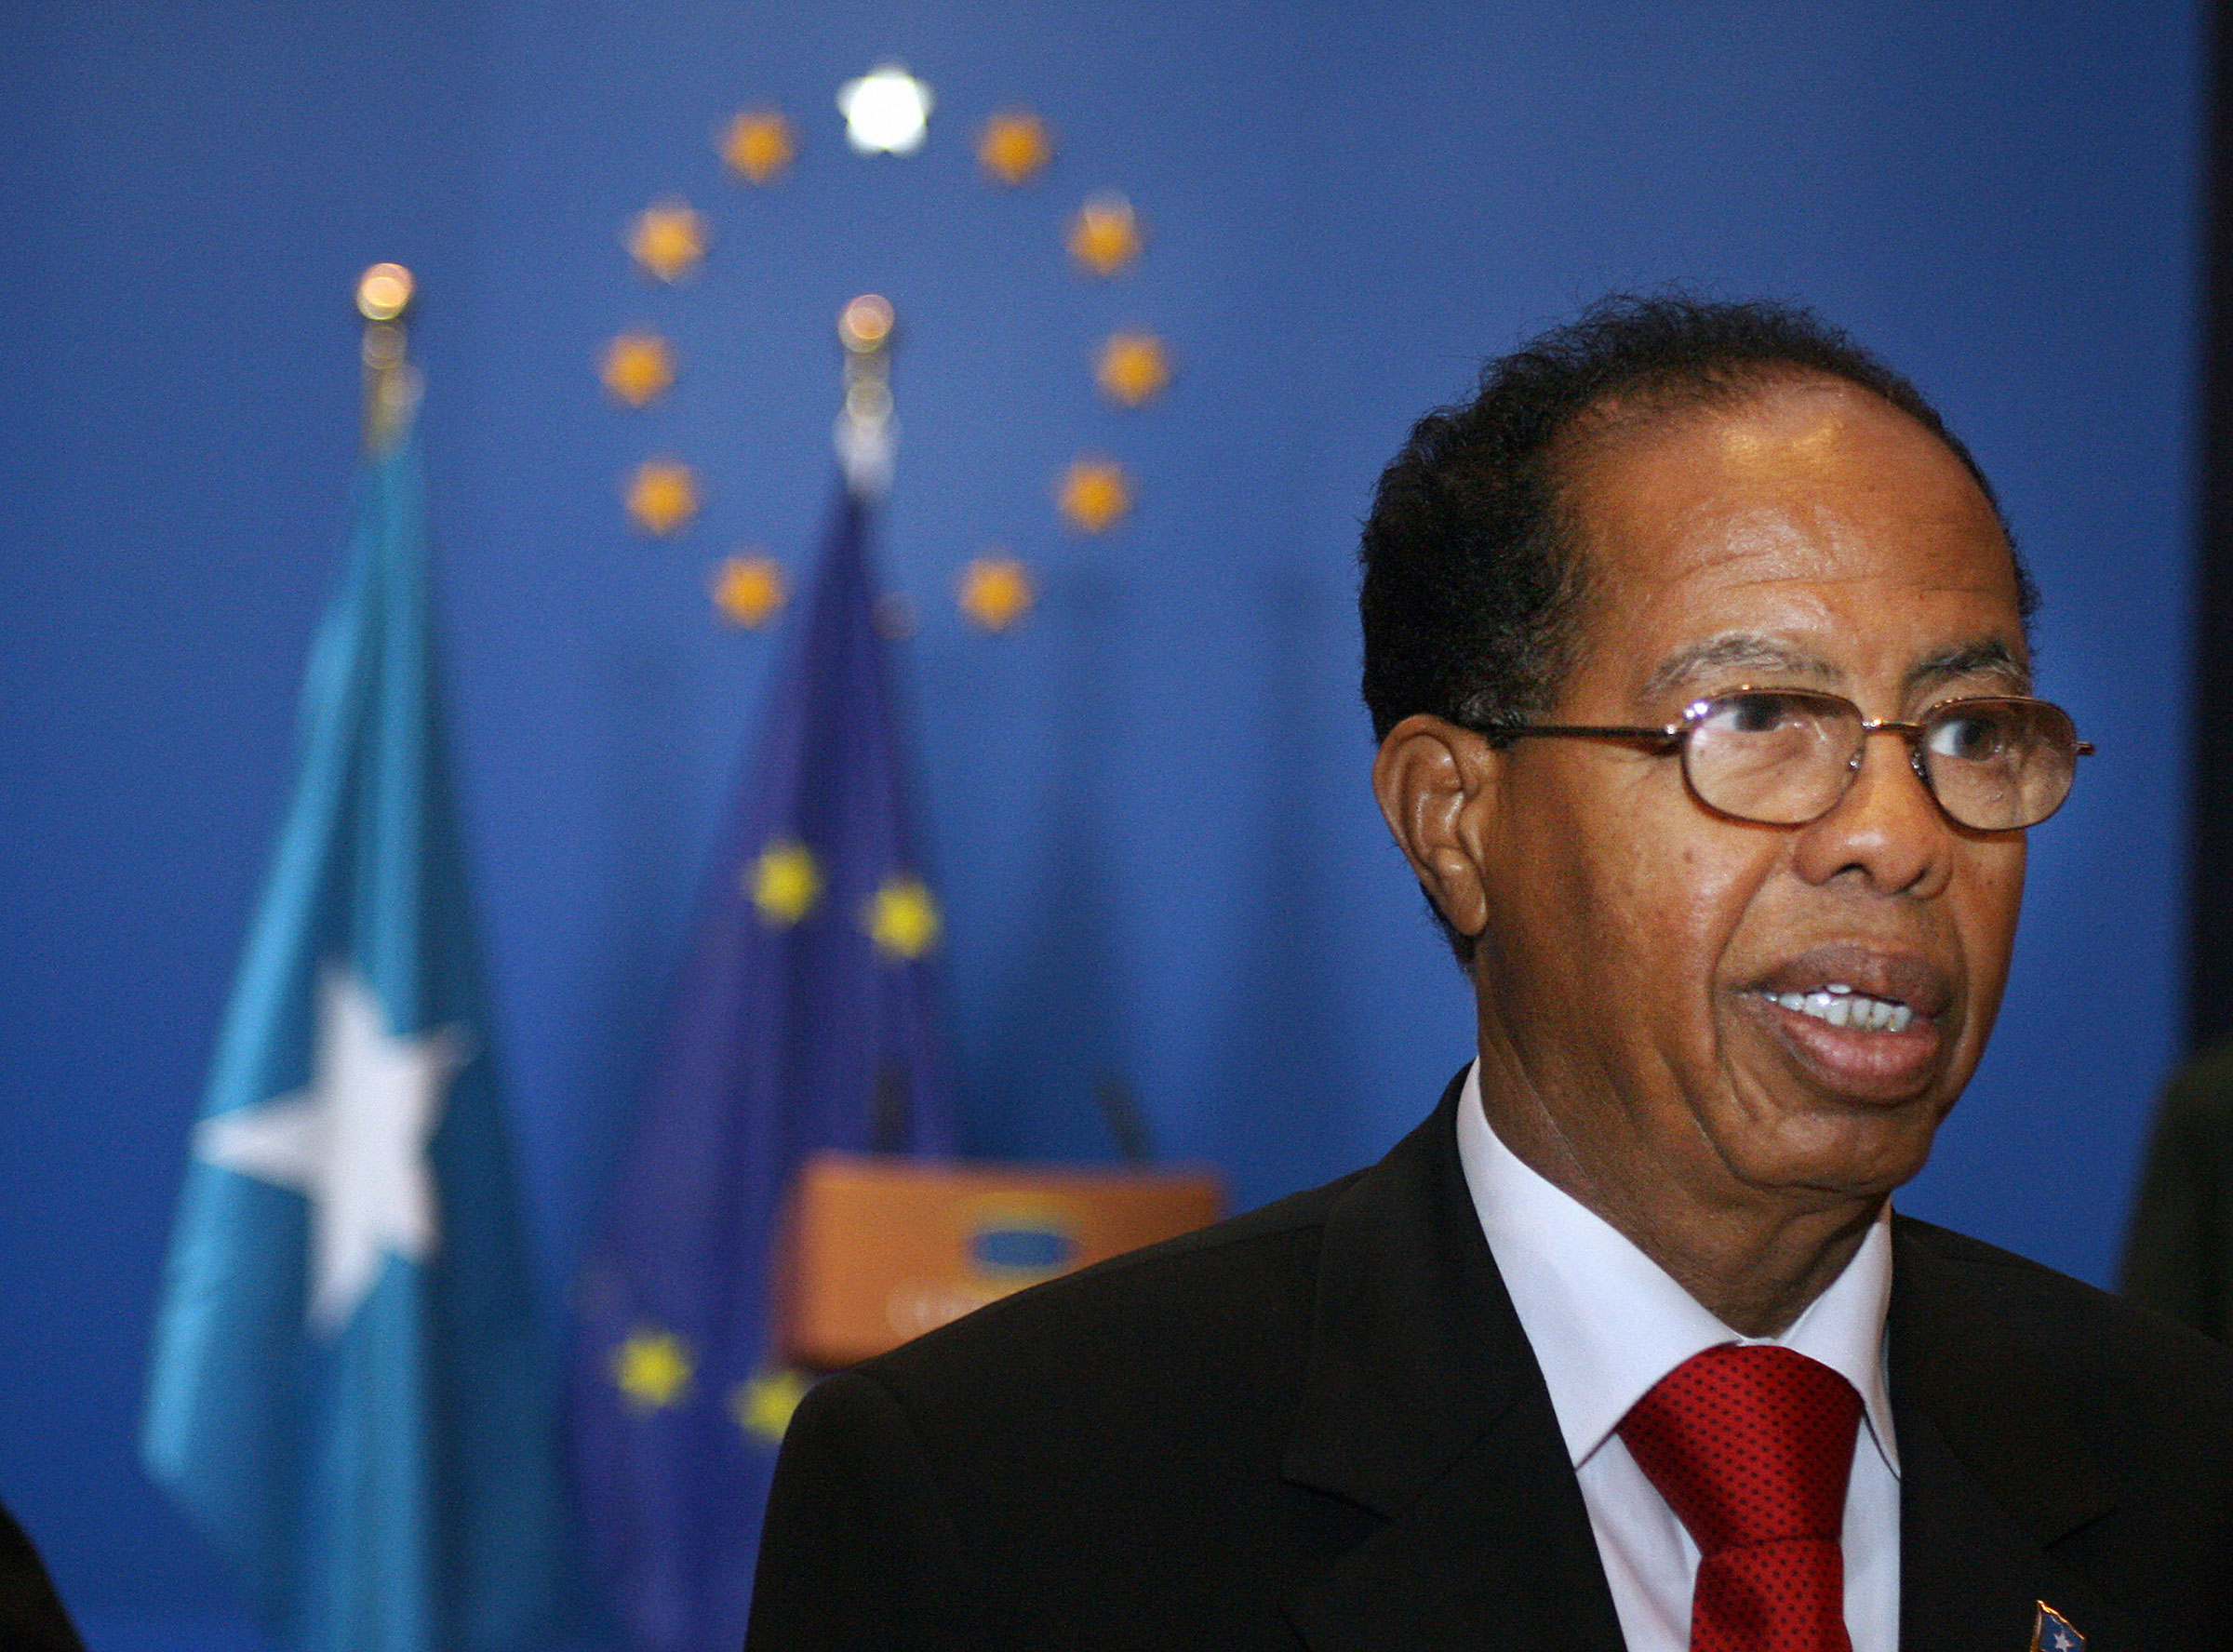 Somalian Prime Minister Nur Hassan Hussein in February 2008